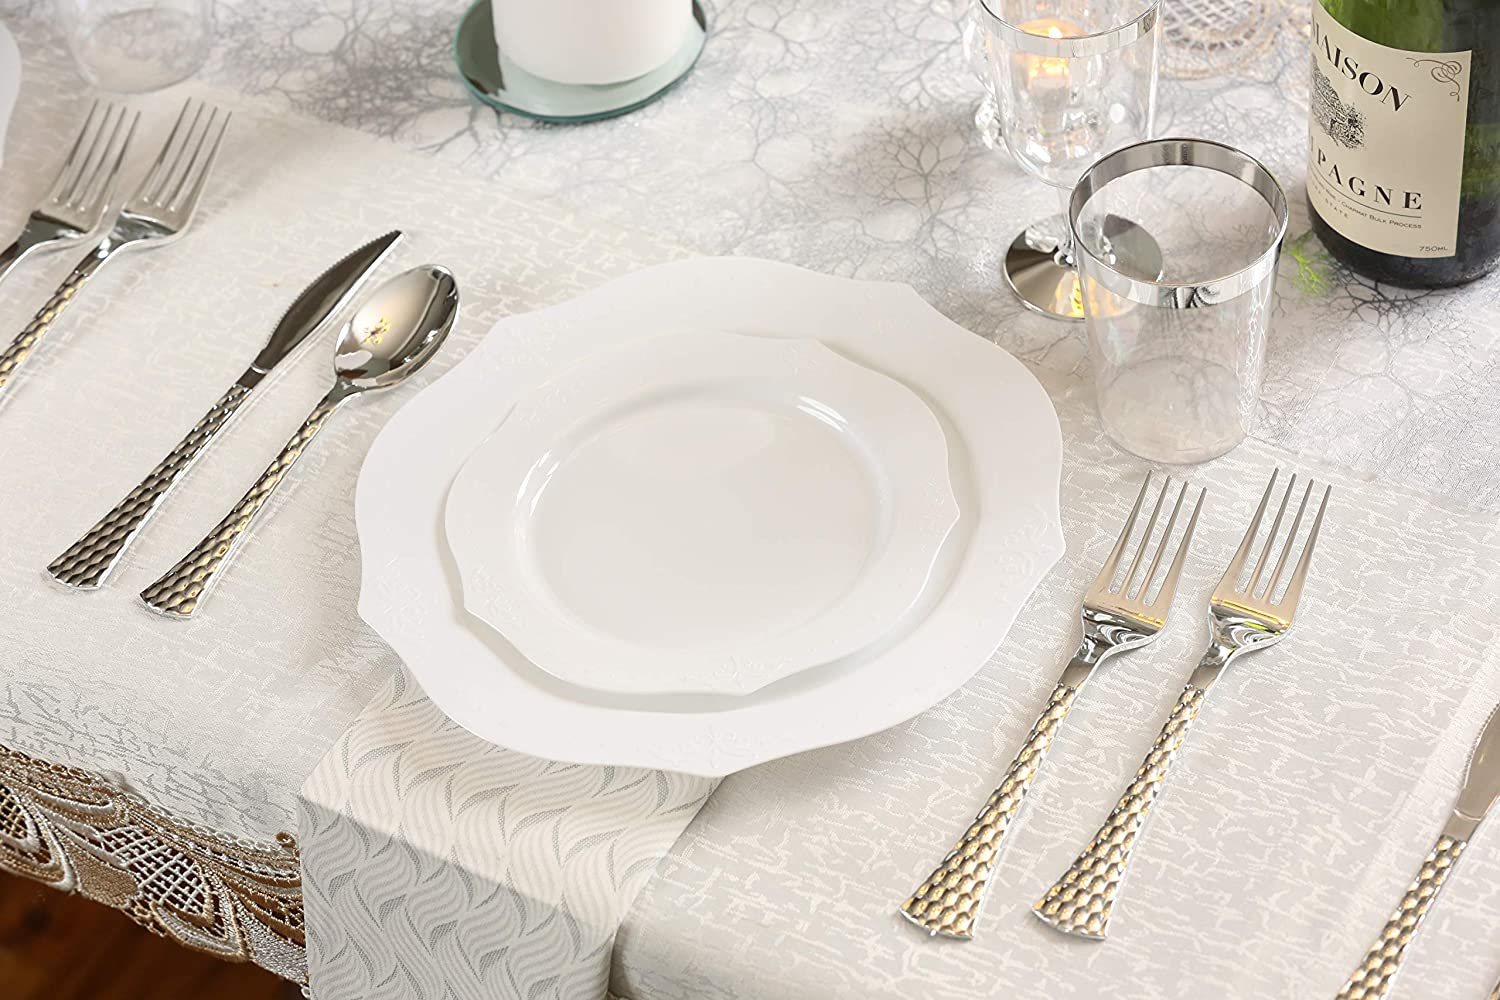 Wedding Plastic Dishes For 20 Guests Posh Setting Elegant Collection White Plastic Disposable Dinnerware Set Fancy Disposable Dinnerware 20 10.25 Dinner Plates and 20 7.25 Salad Plates